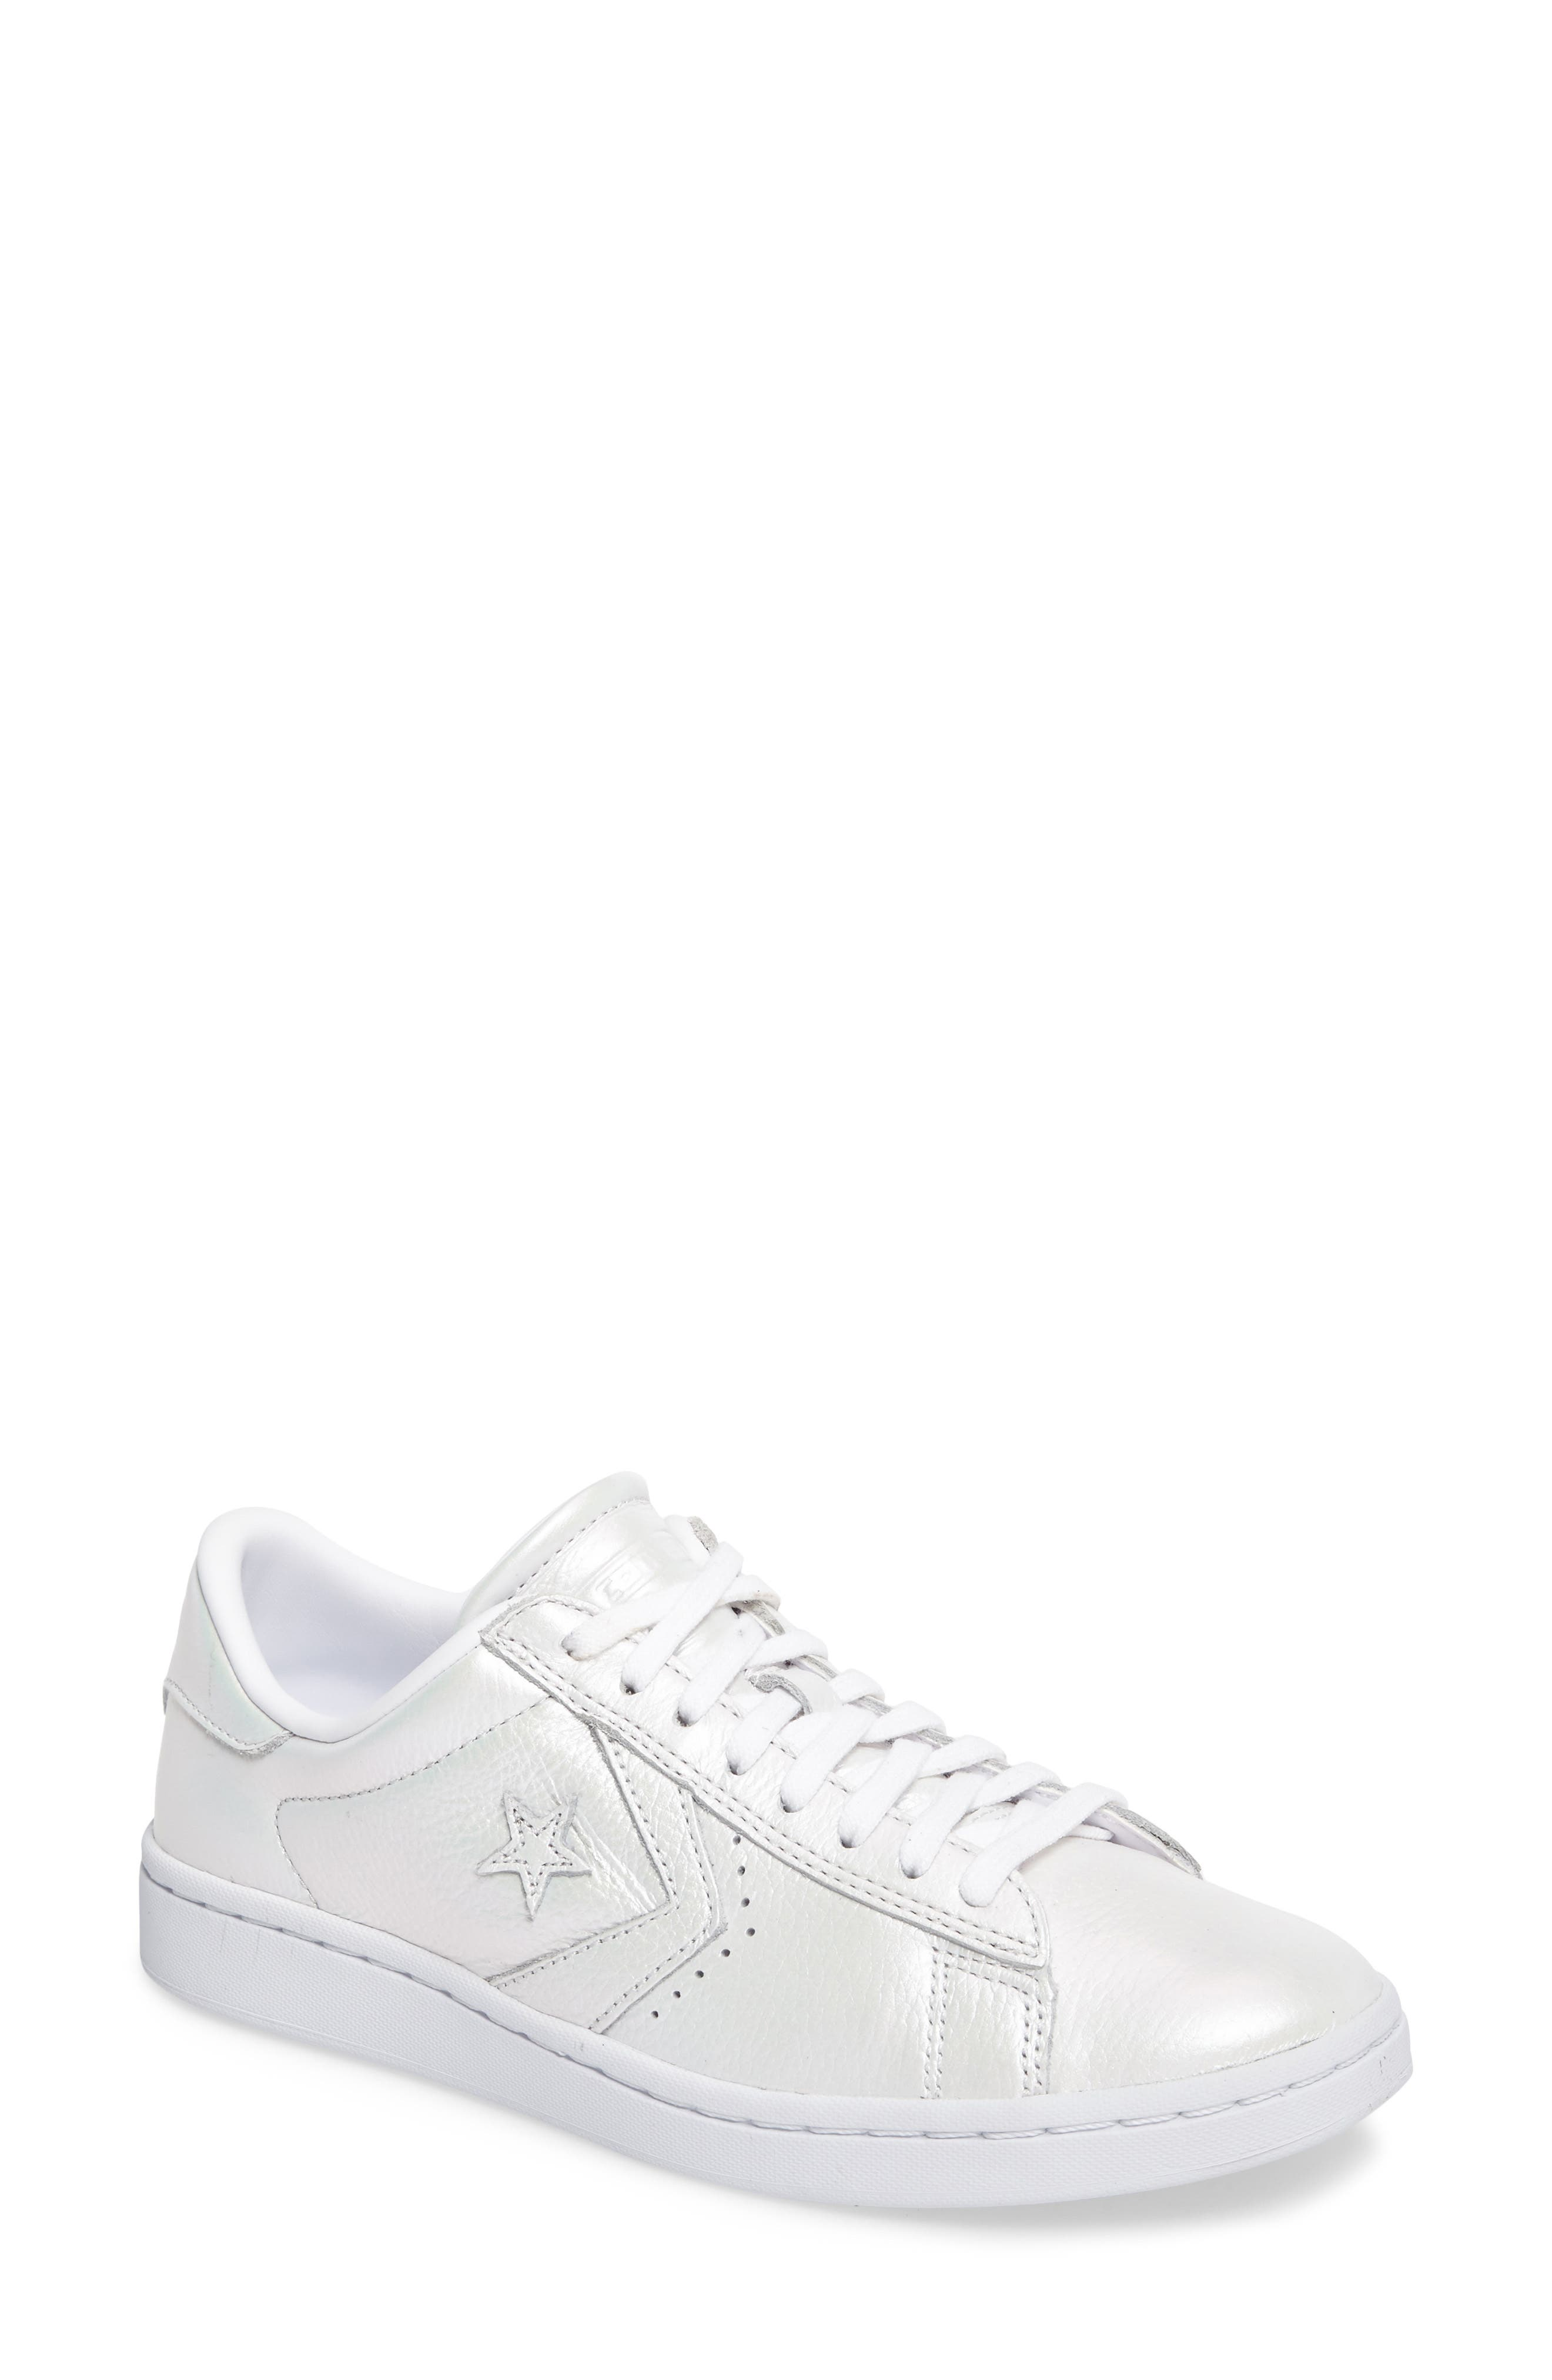 Pro Leather LP Sneaker,                         Main,                         color, White Leather